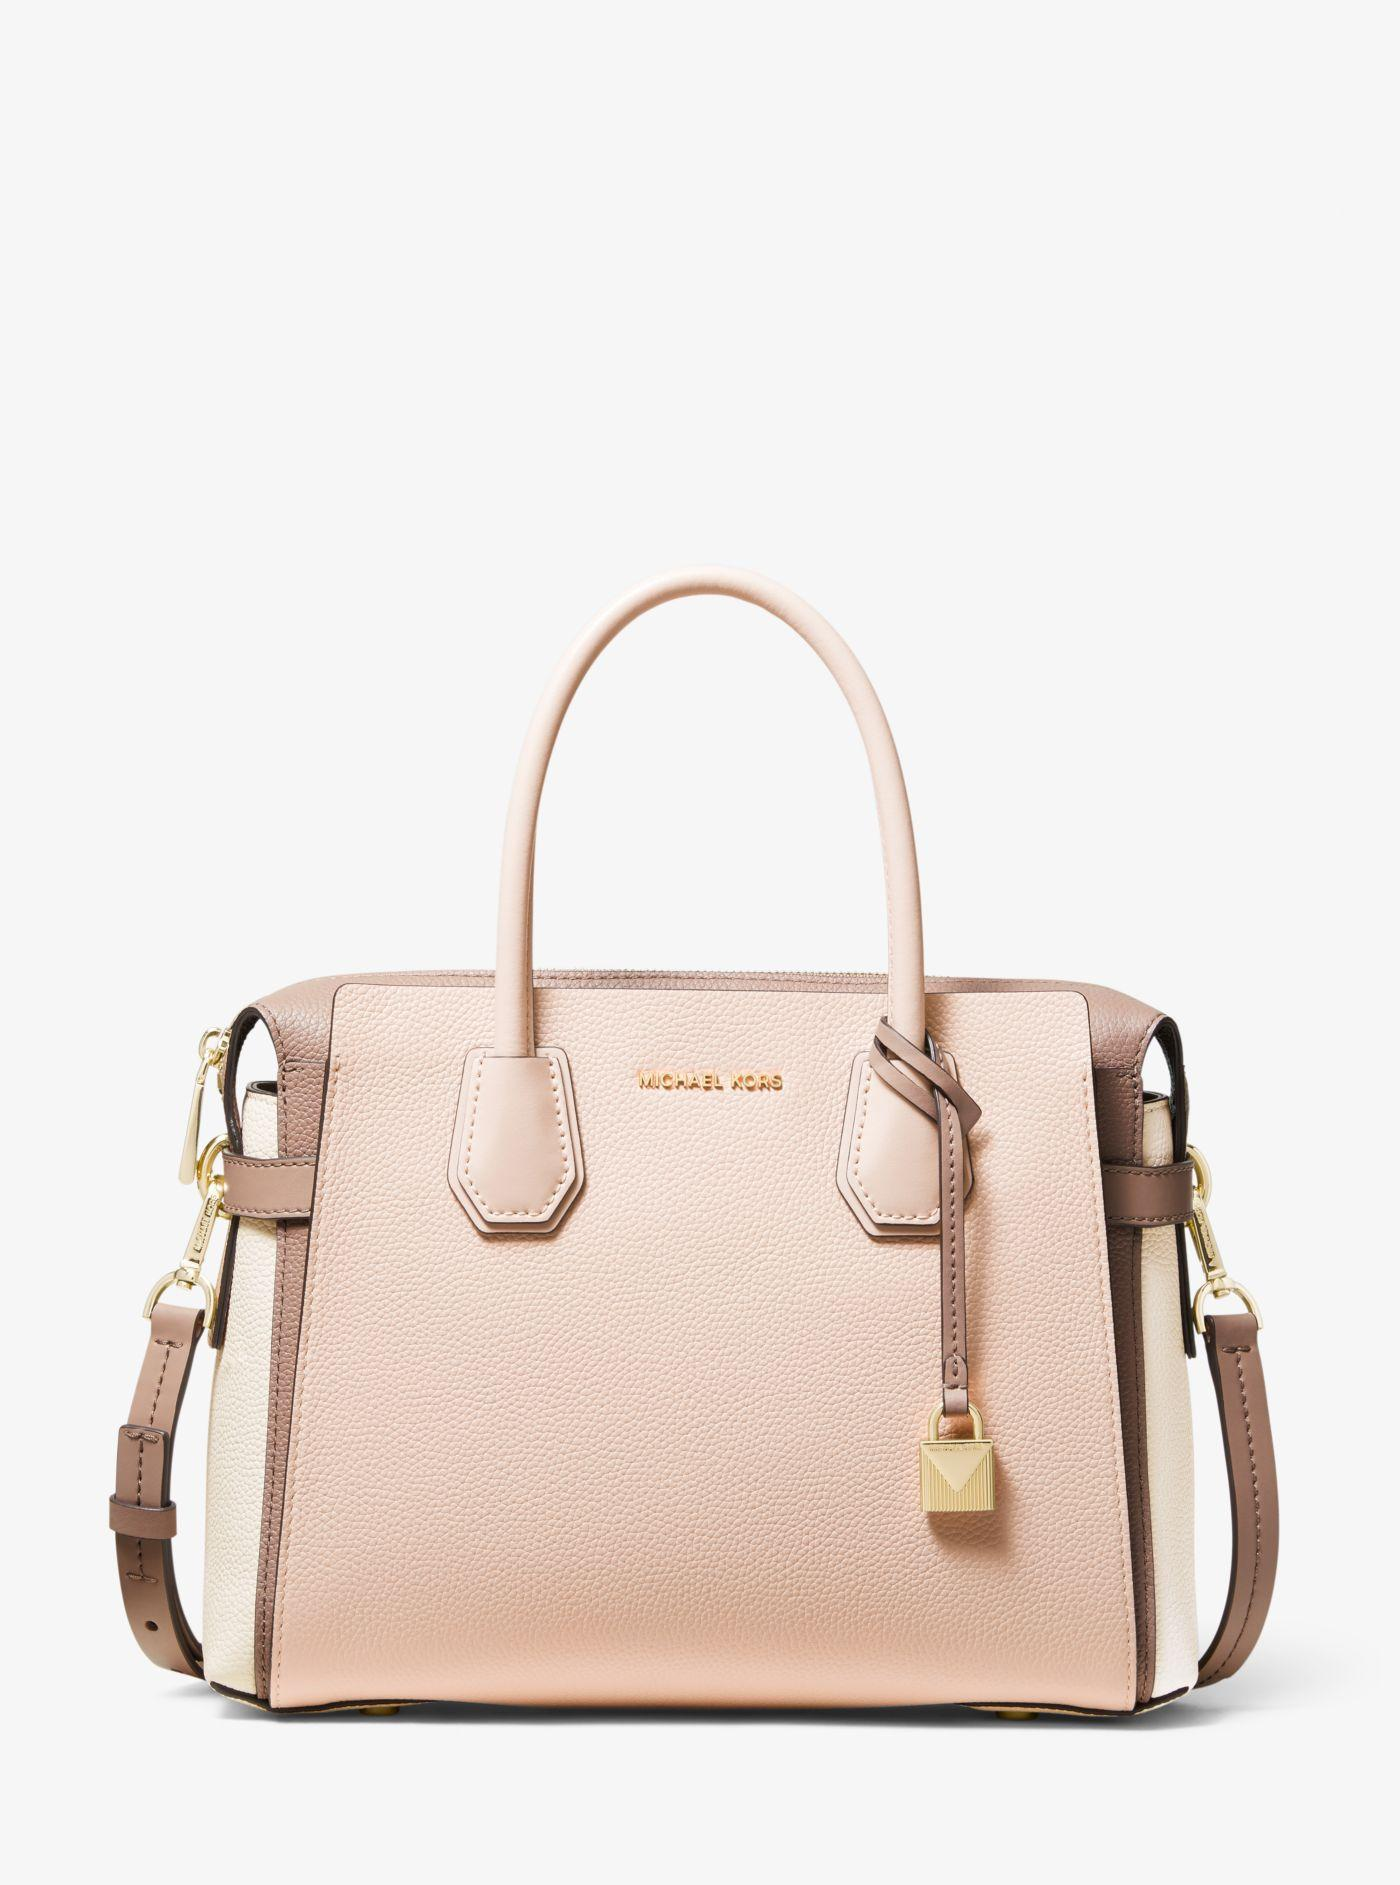 b708caa9c689 Michael Kors. Women s Mercer Medium Tri-color Pebbled Leather Belted Satchel